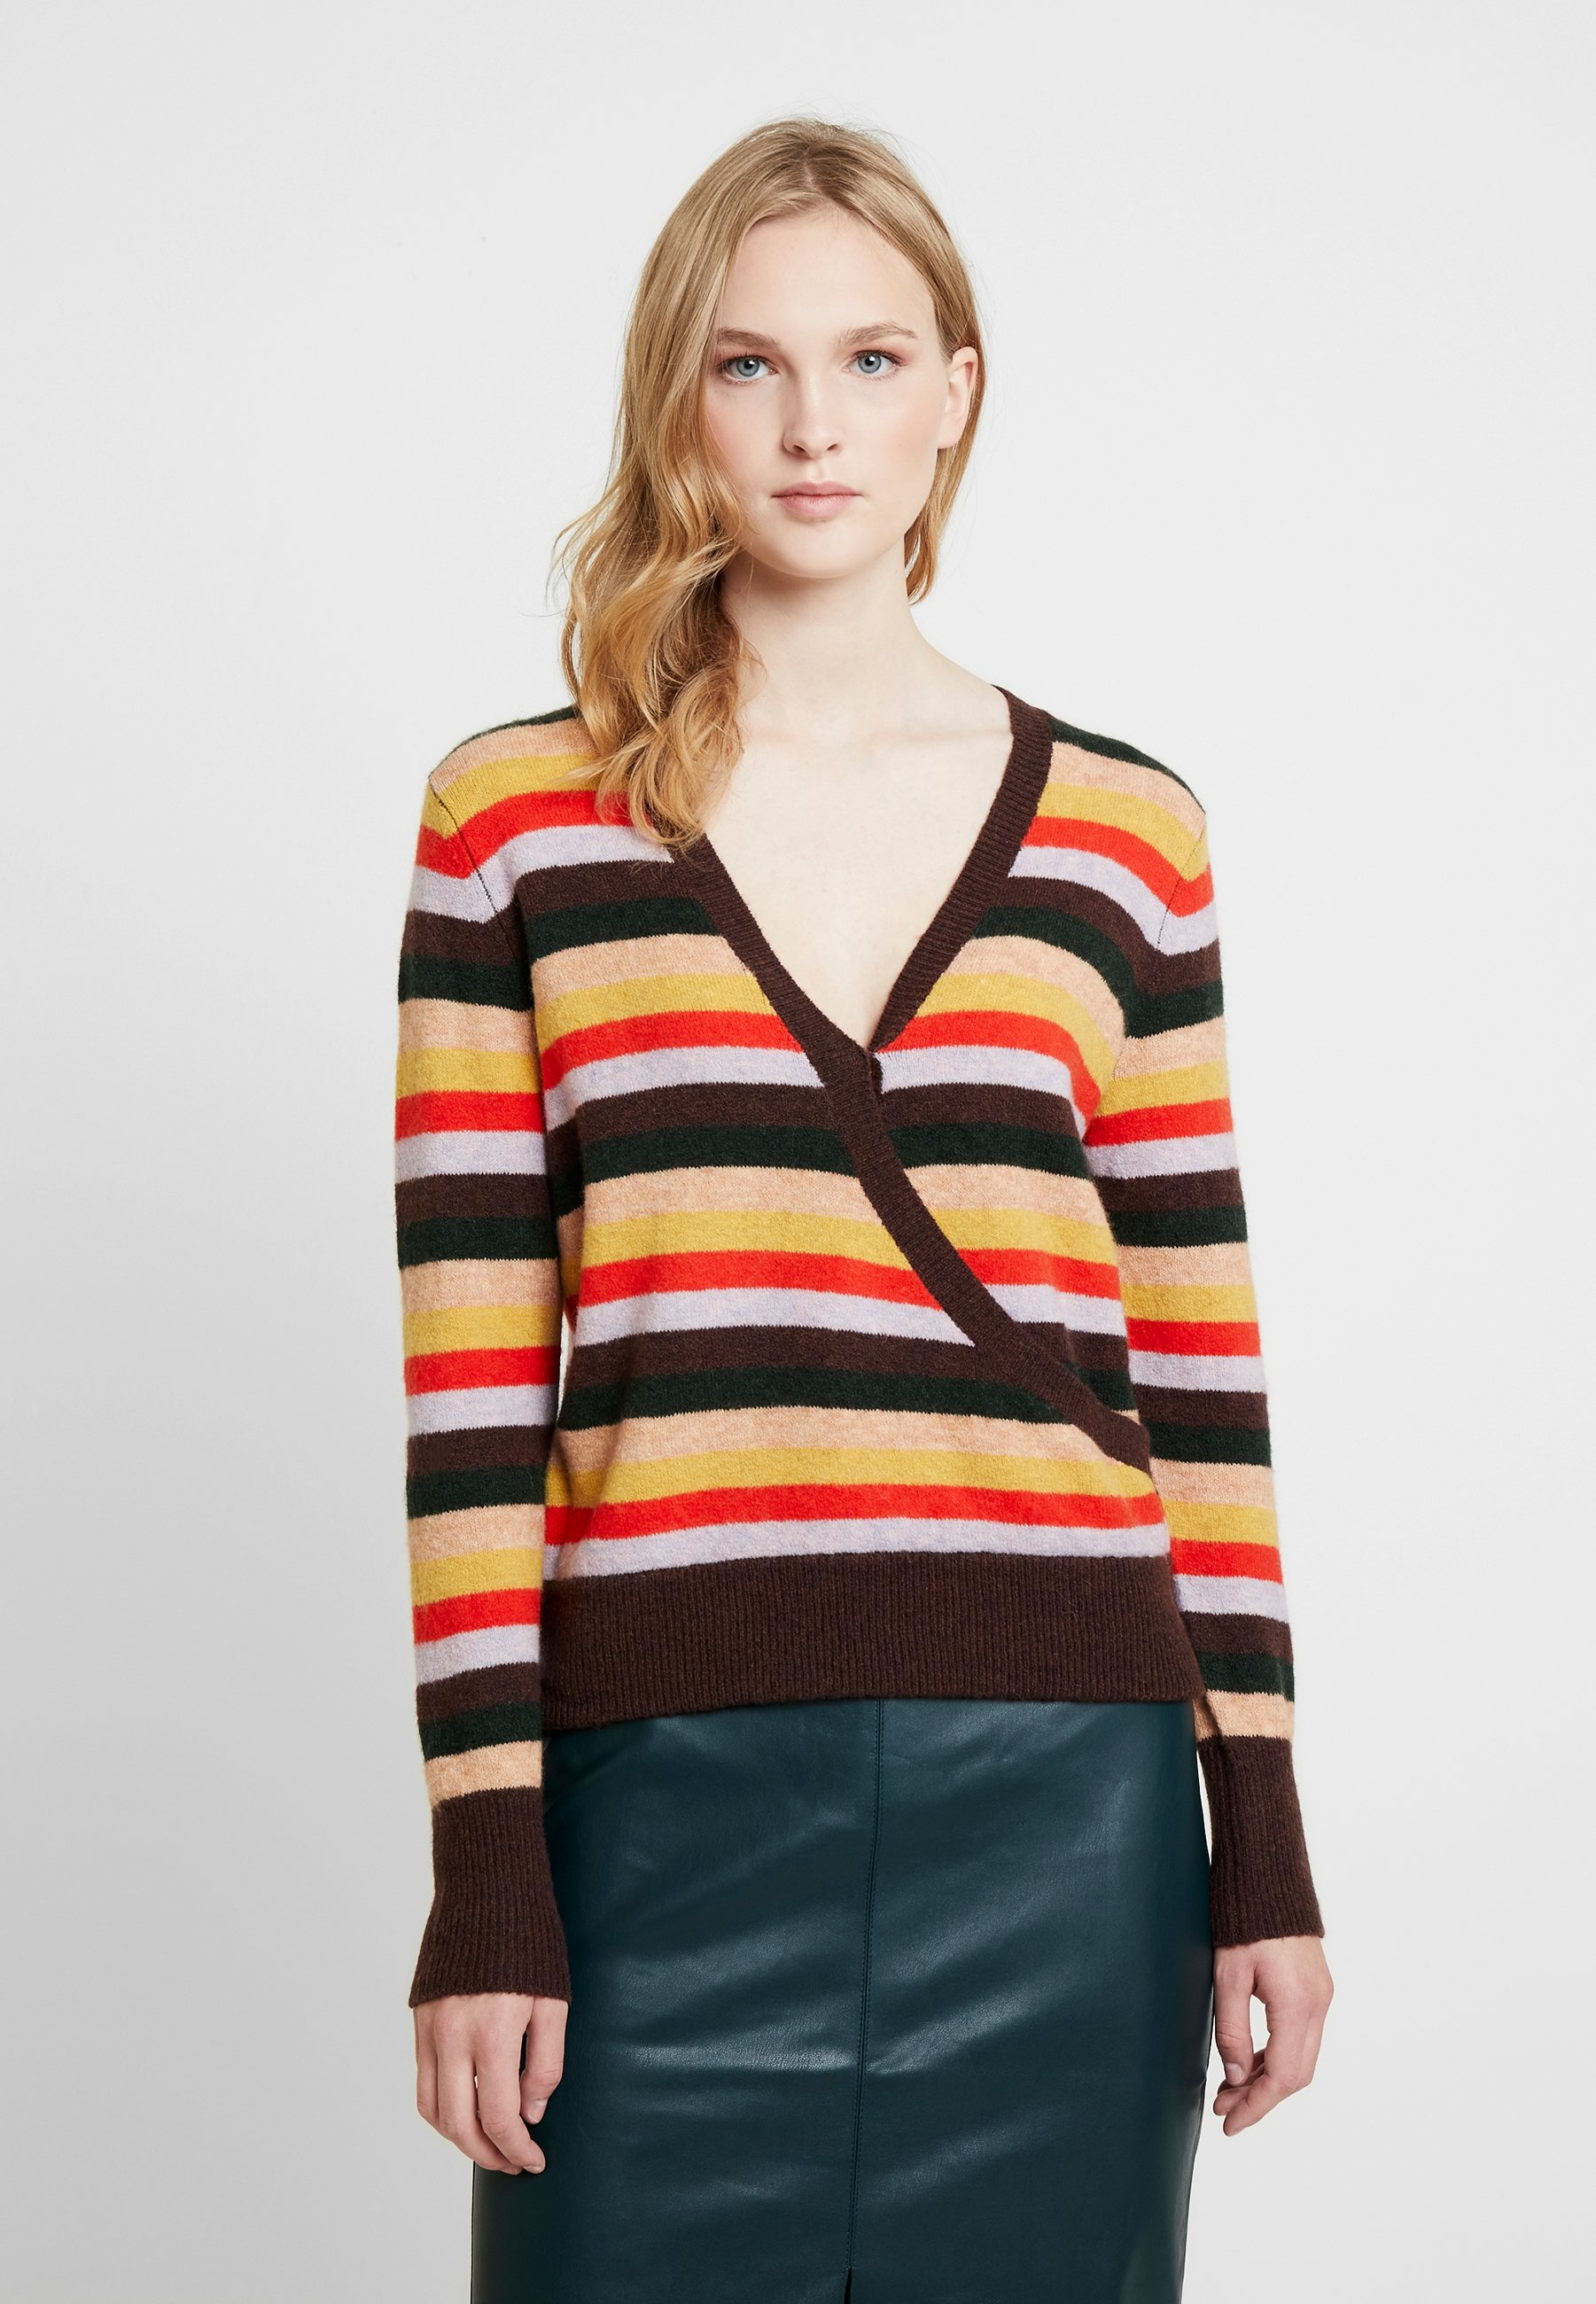 FrontMaglione coloured Multi Stripe Wrap Madewell WEDYI92H